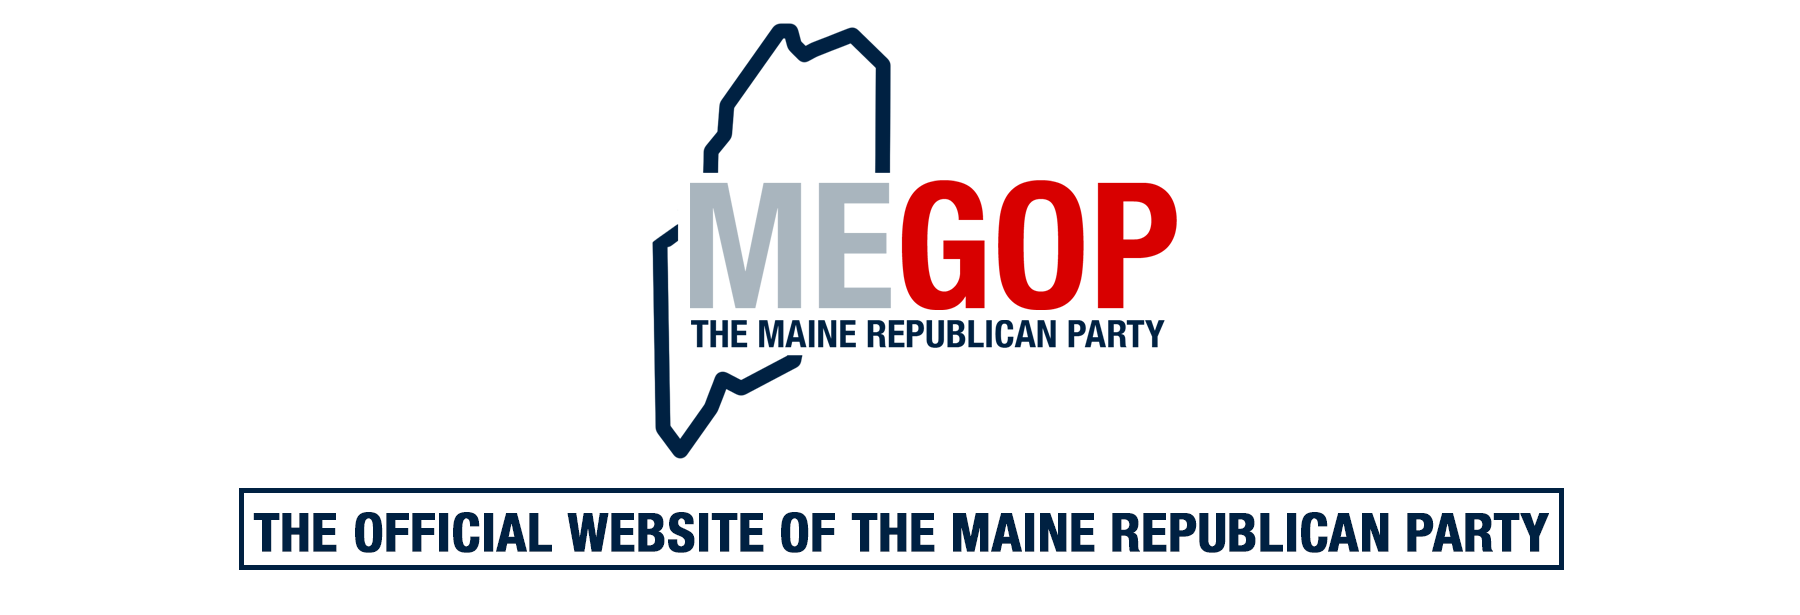 Maine Republican Party: 2019 Maine GOP Website